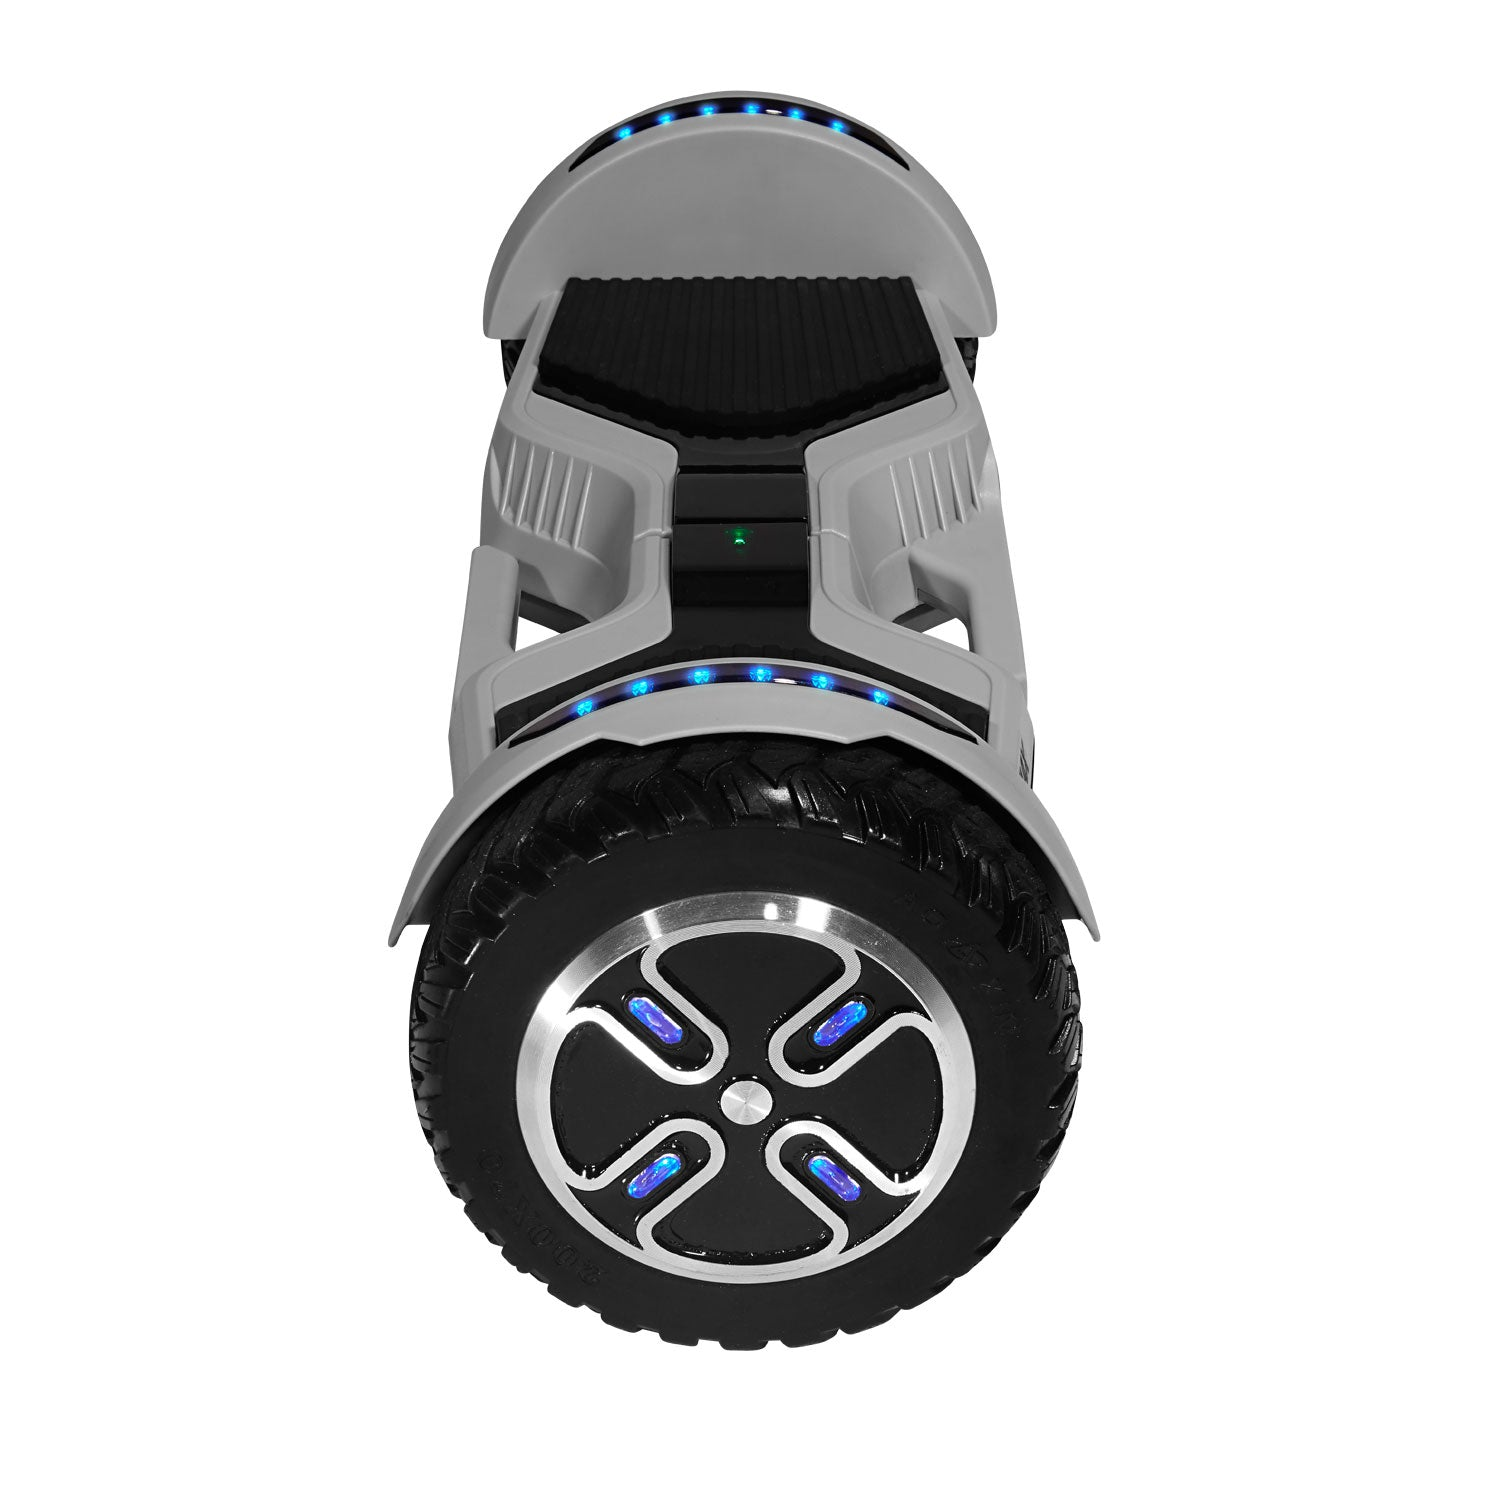 Silver Black Hoverfly E3 Hoverboard Wheel Image